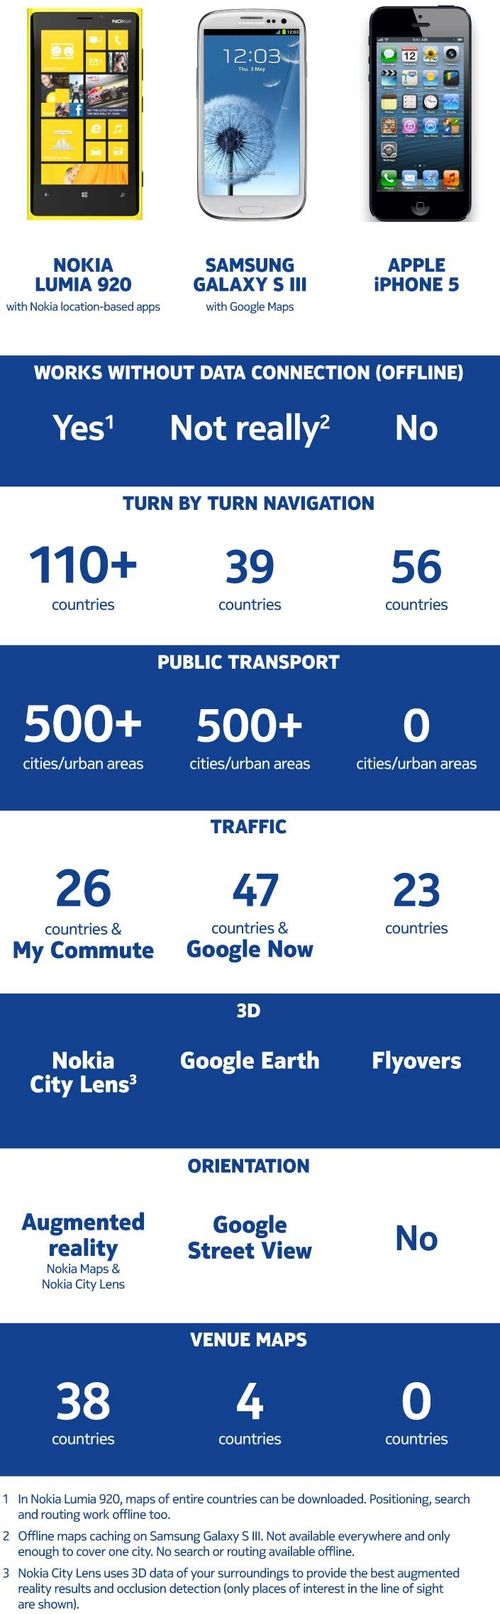 Nokia-maps-app-comparison-infographic